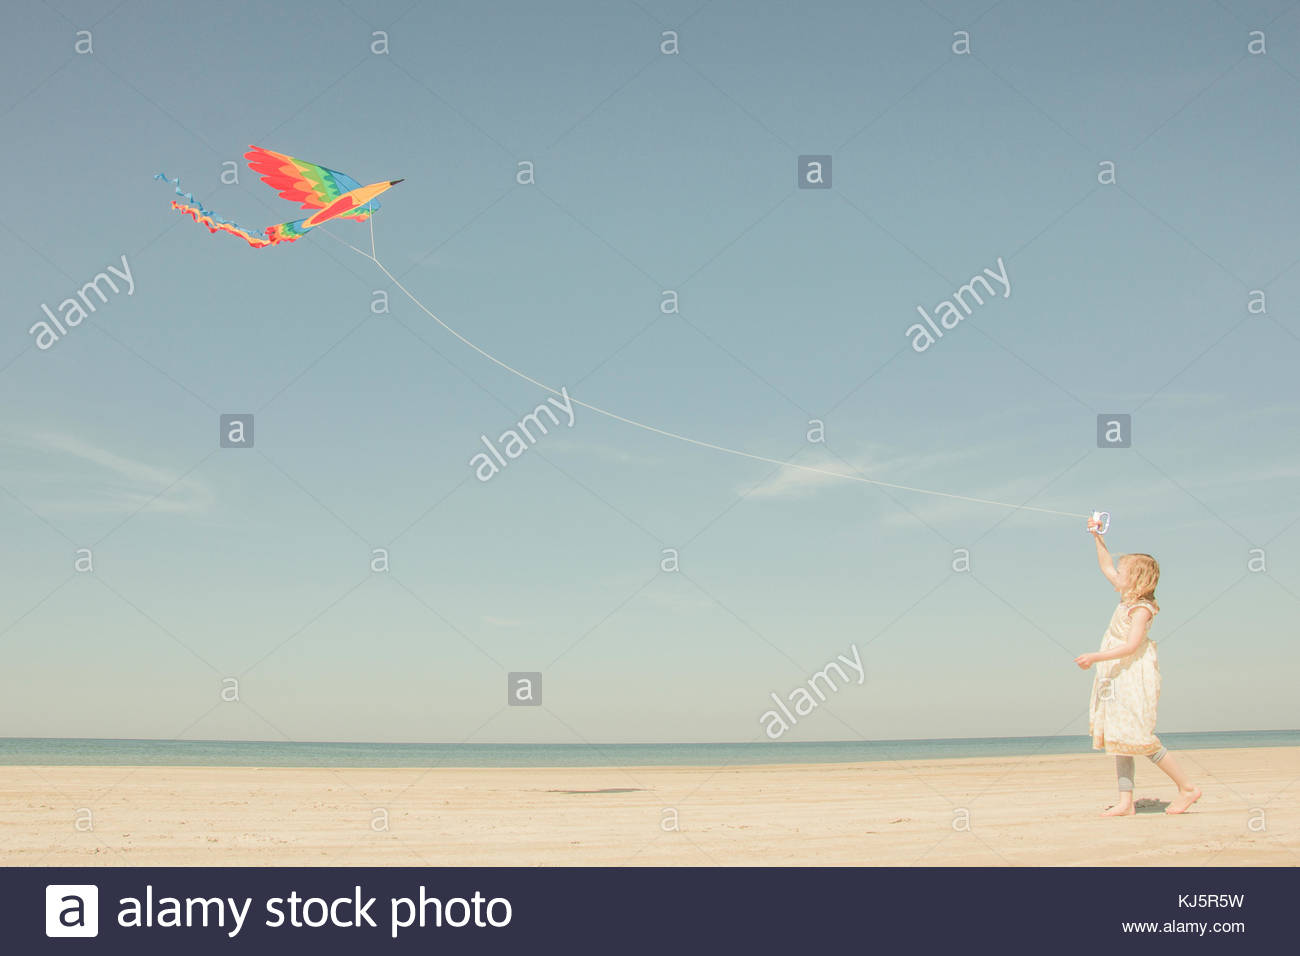 Little girl playing with the kite - Stock Image